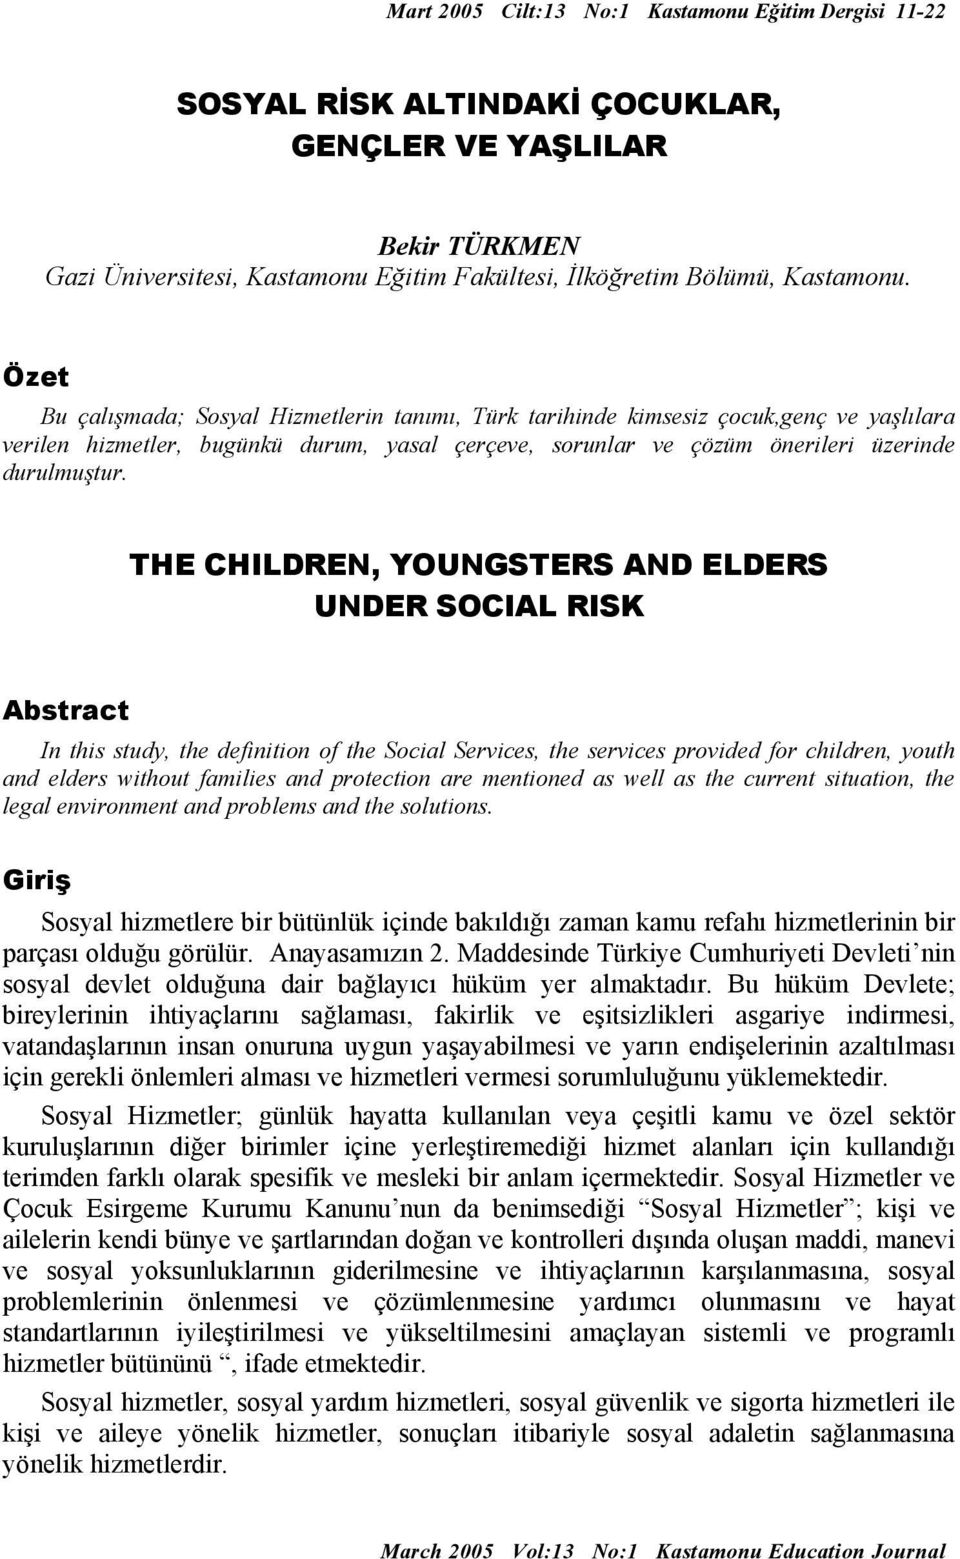 THE CHILDREN, YOUNGSTERS AND ELDERS UNDER SOCIAL RISK Abstract In this study, the definition of the Social Services, the services provided for children, youth and elders without families and